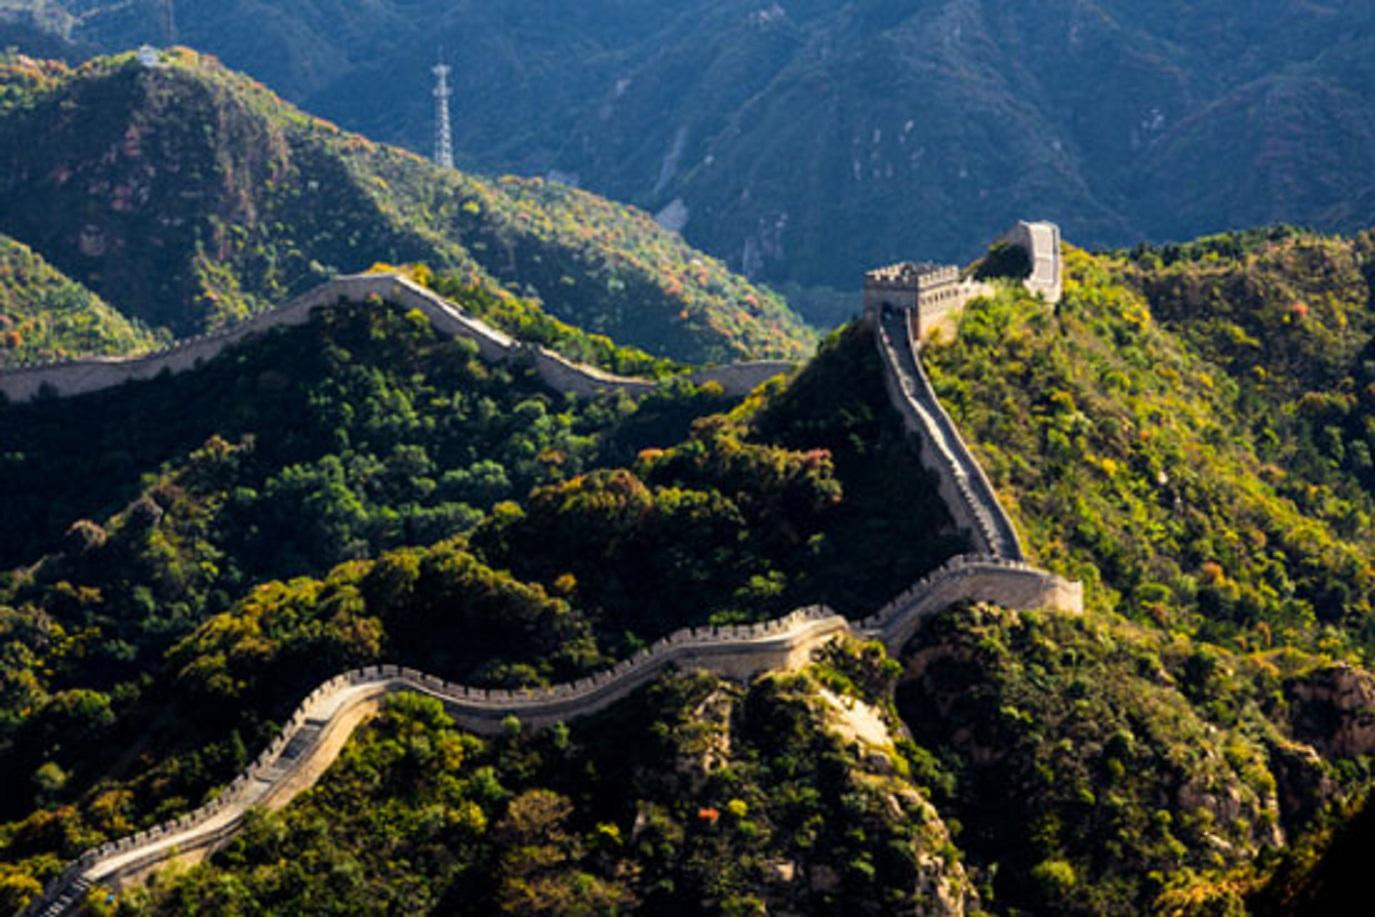 10 Most Beautiful Places In The World 9 The Great Wall Of China